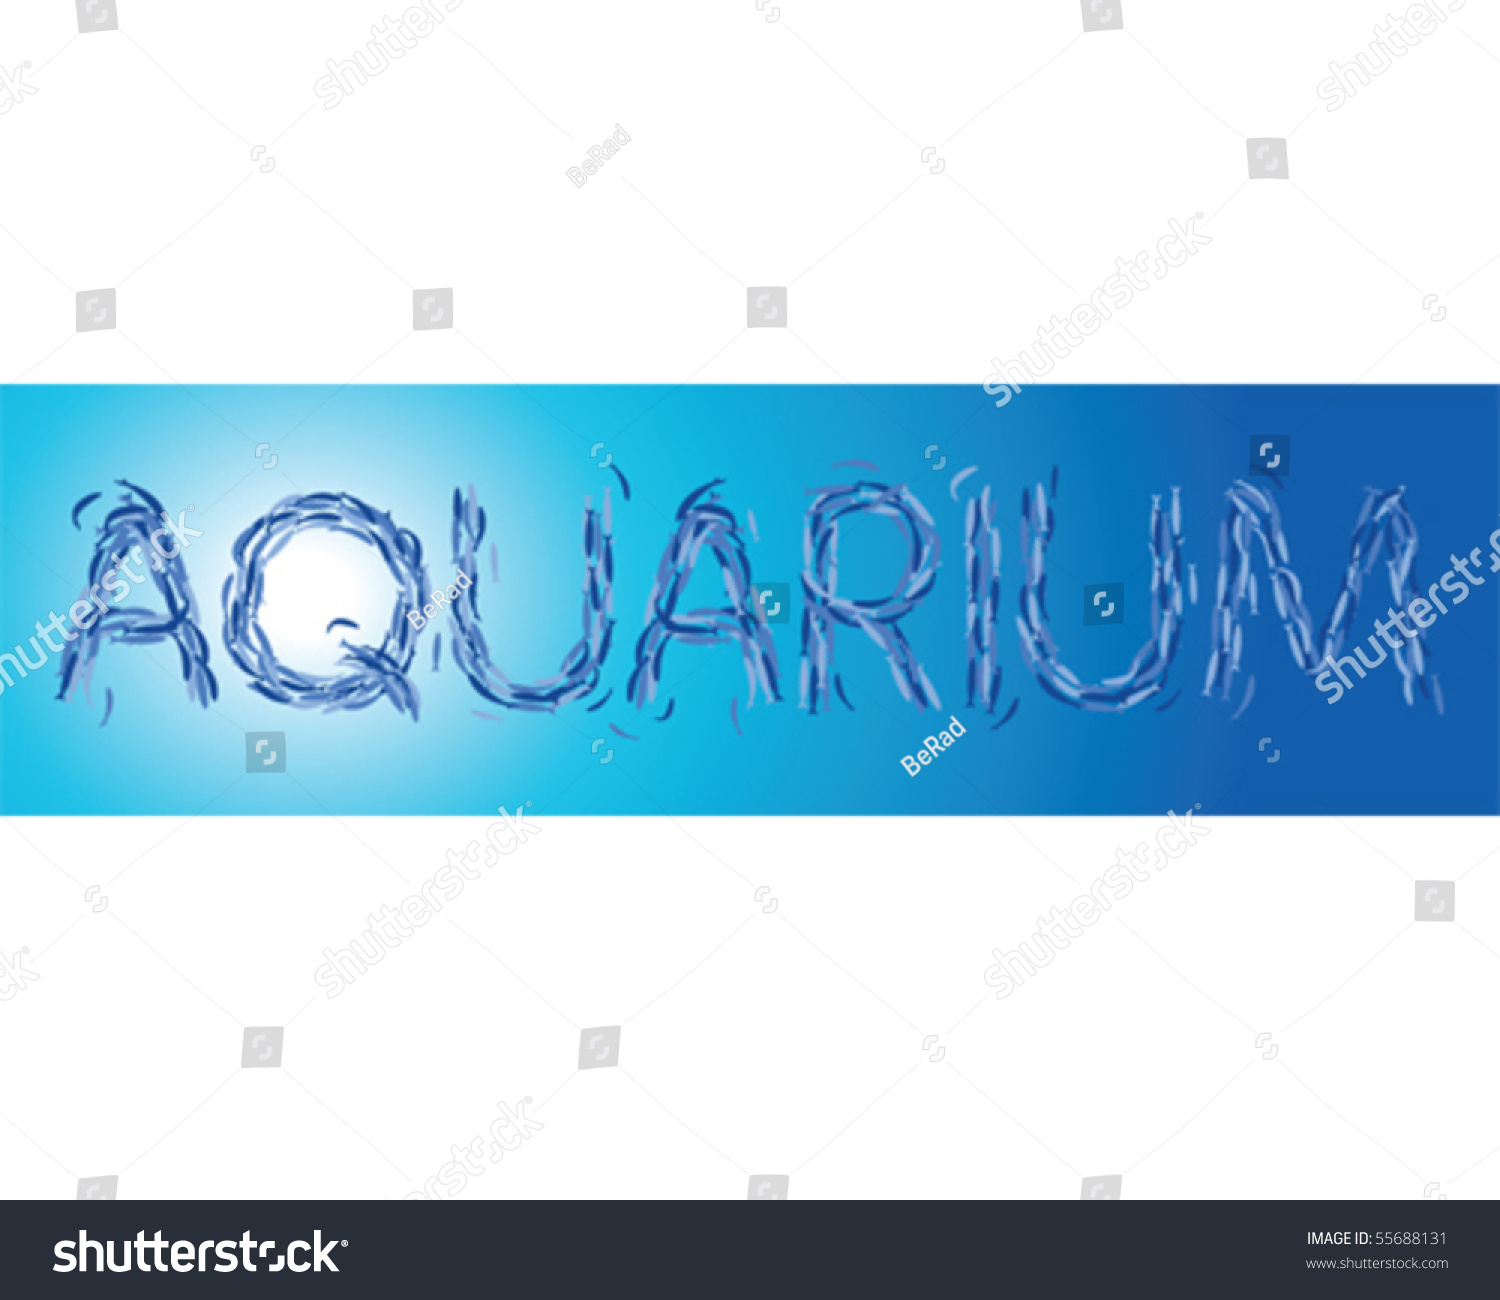 Fishes aquarium word stock vector illustration 55688131 for Is fishes a word